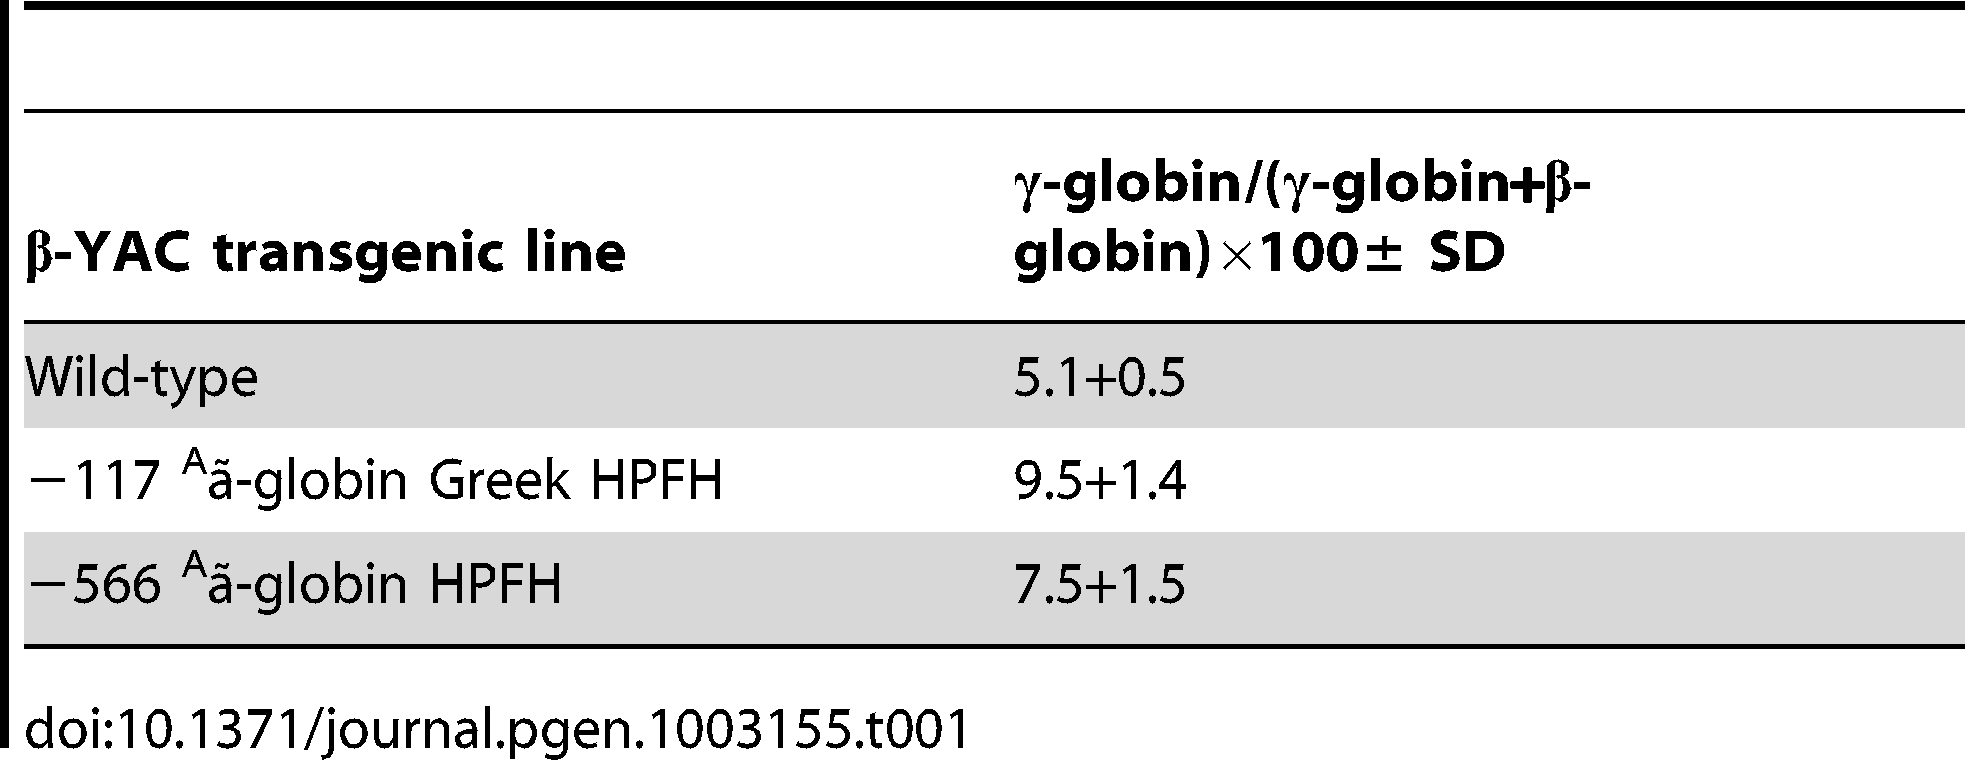 RP-HPLC determination of γ-globin chain expression as a percentage of total human β-like globin chain expression in −566 <sup>A</sup>γ-globin HPFH β-YAC transgenic mice.